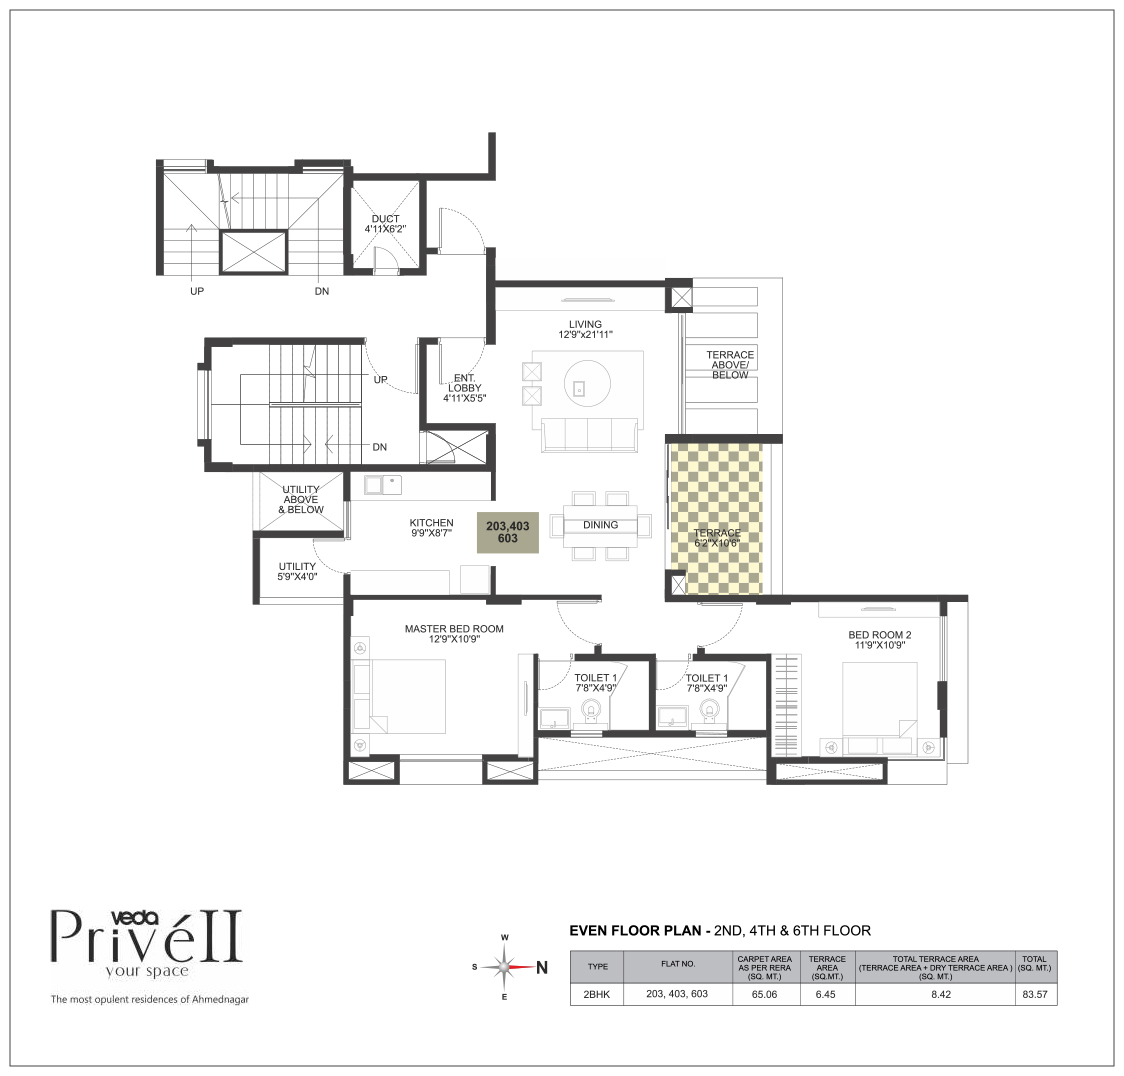 Veda Priv Ii Ventures The Floor Plan At Right Is Only Part Of An Ongoing Electrical Project Even 203 403 603